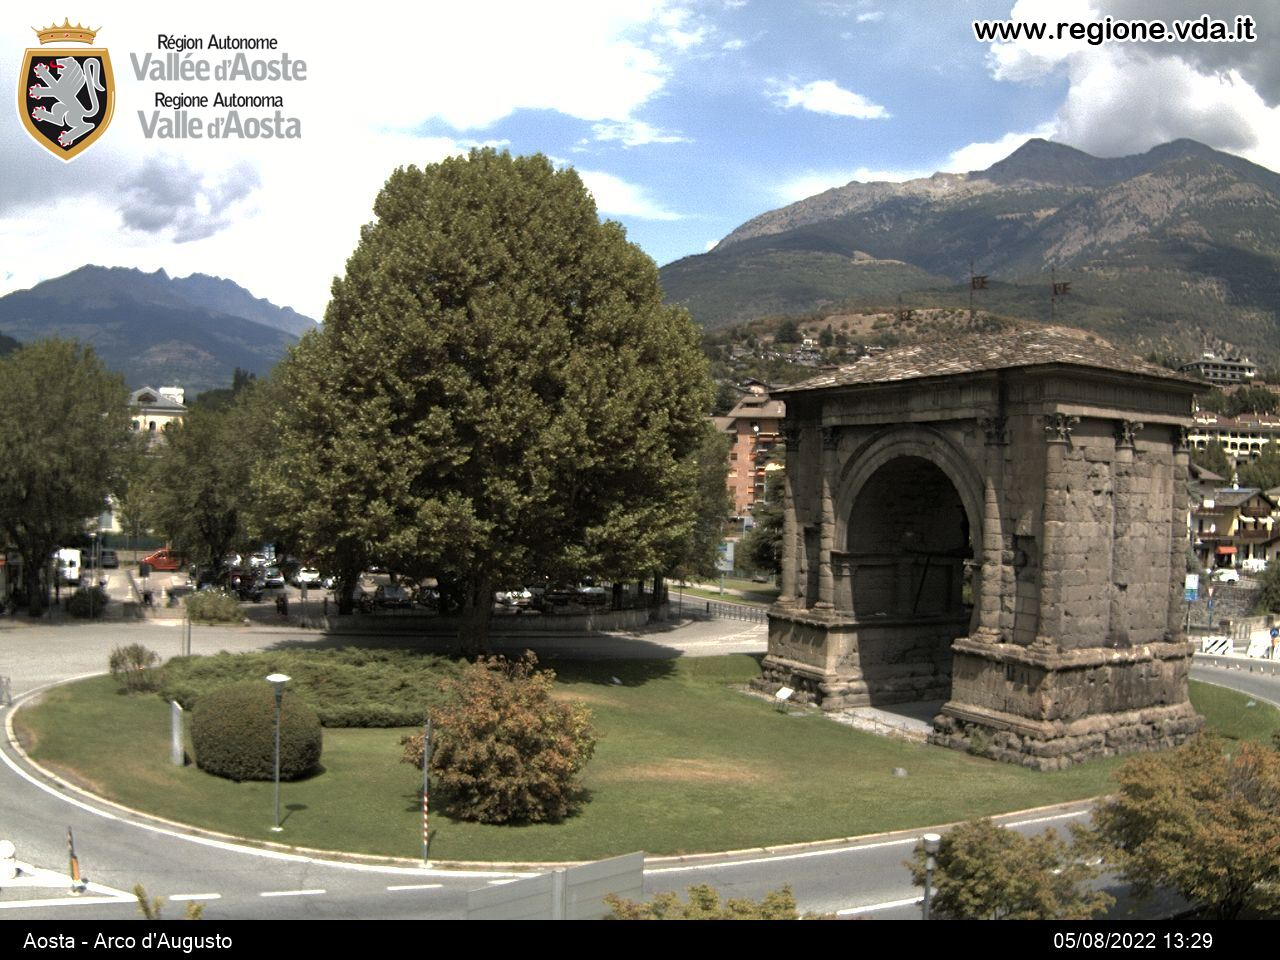 Webcam Arco d'Augusto - Aosta